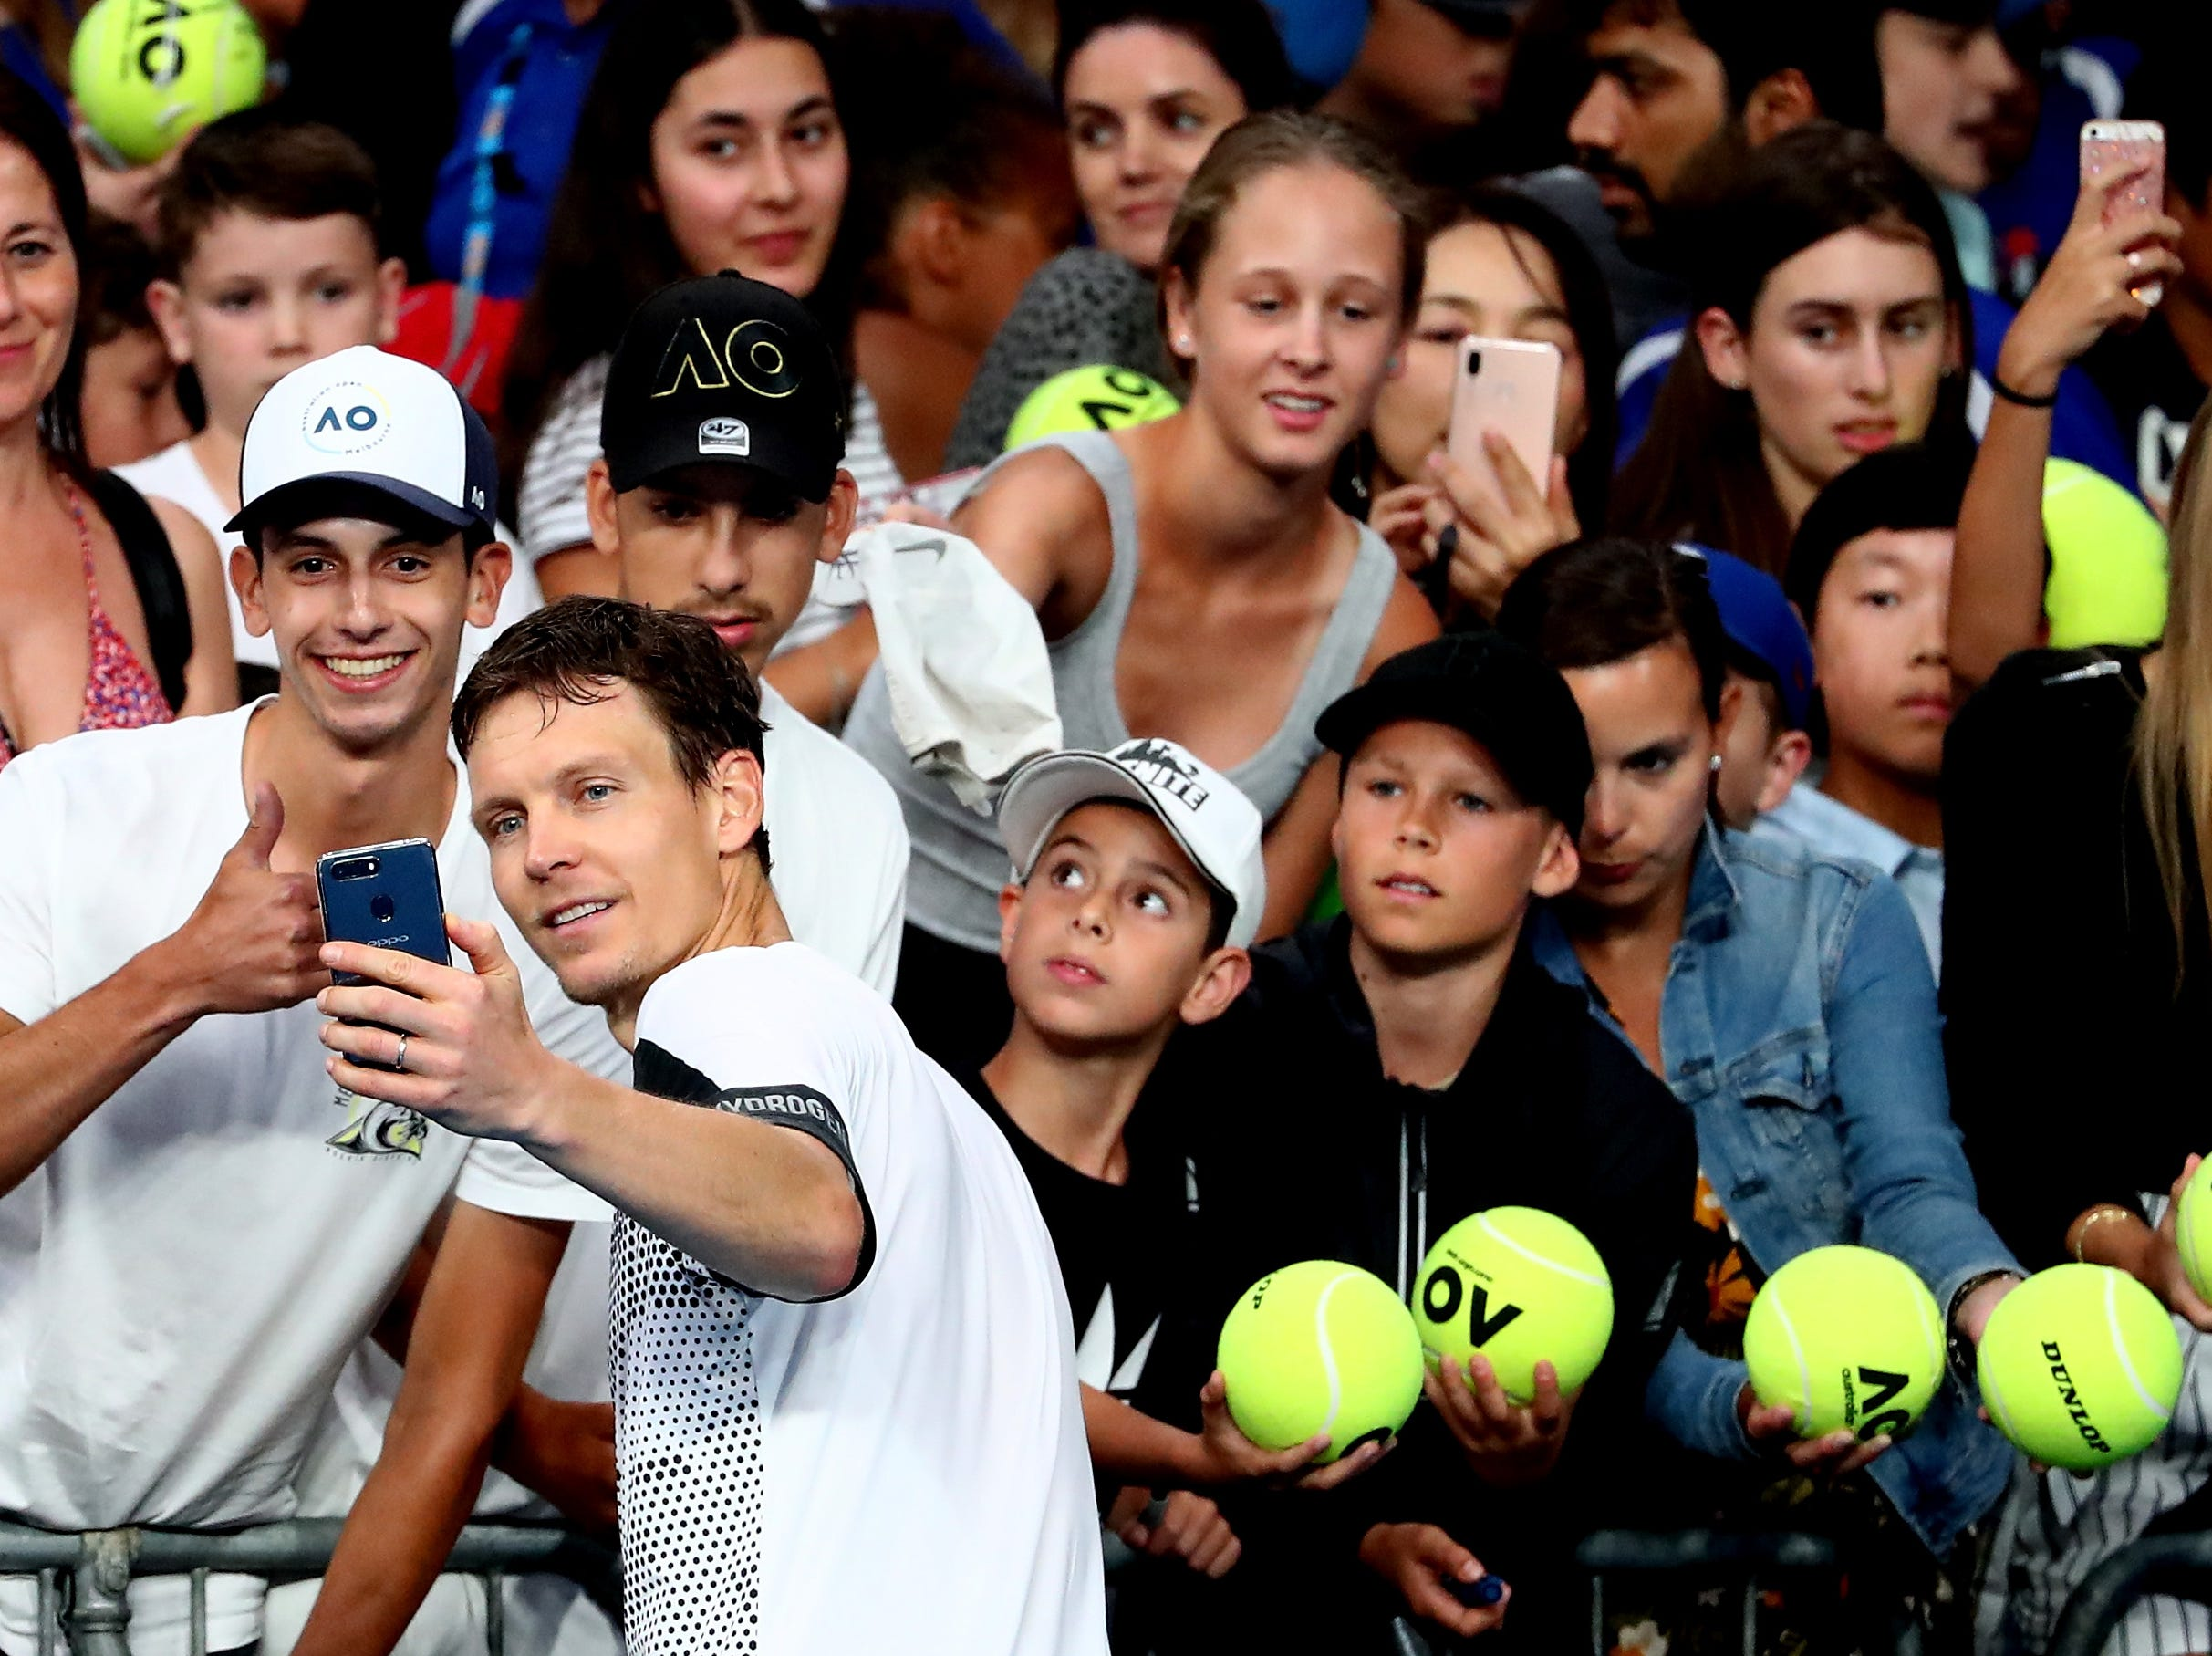 Tomas Berdych of the Czech Republic poses for a selfie with fans after upsetting No. 18 seed Diego Schwartzman of Argentina in the third round.